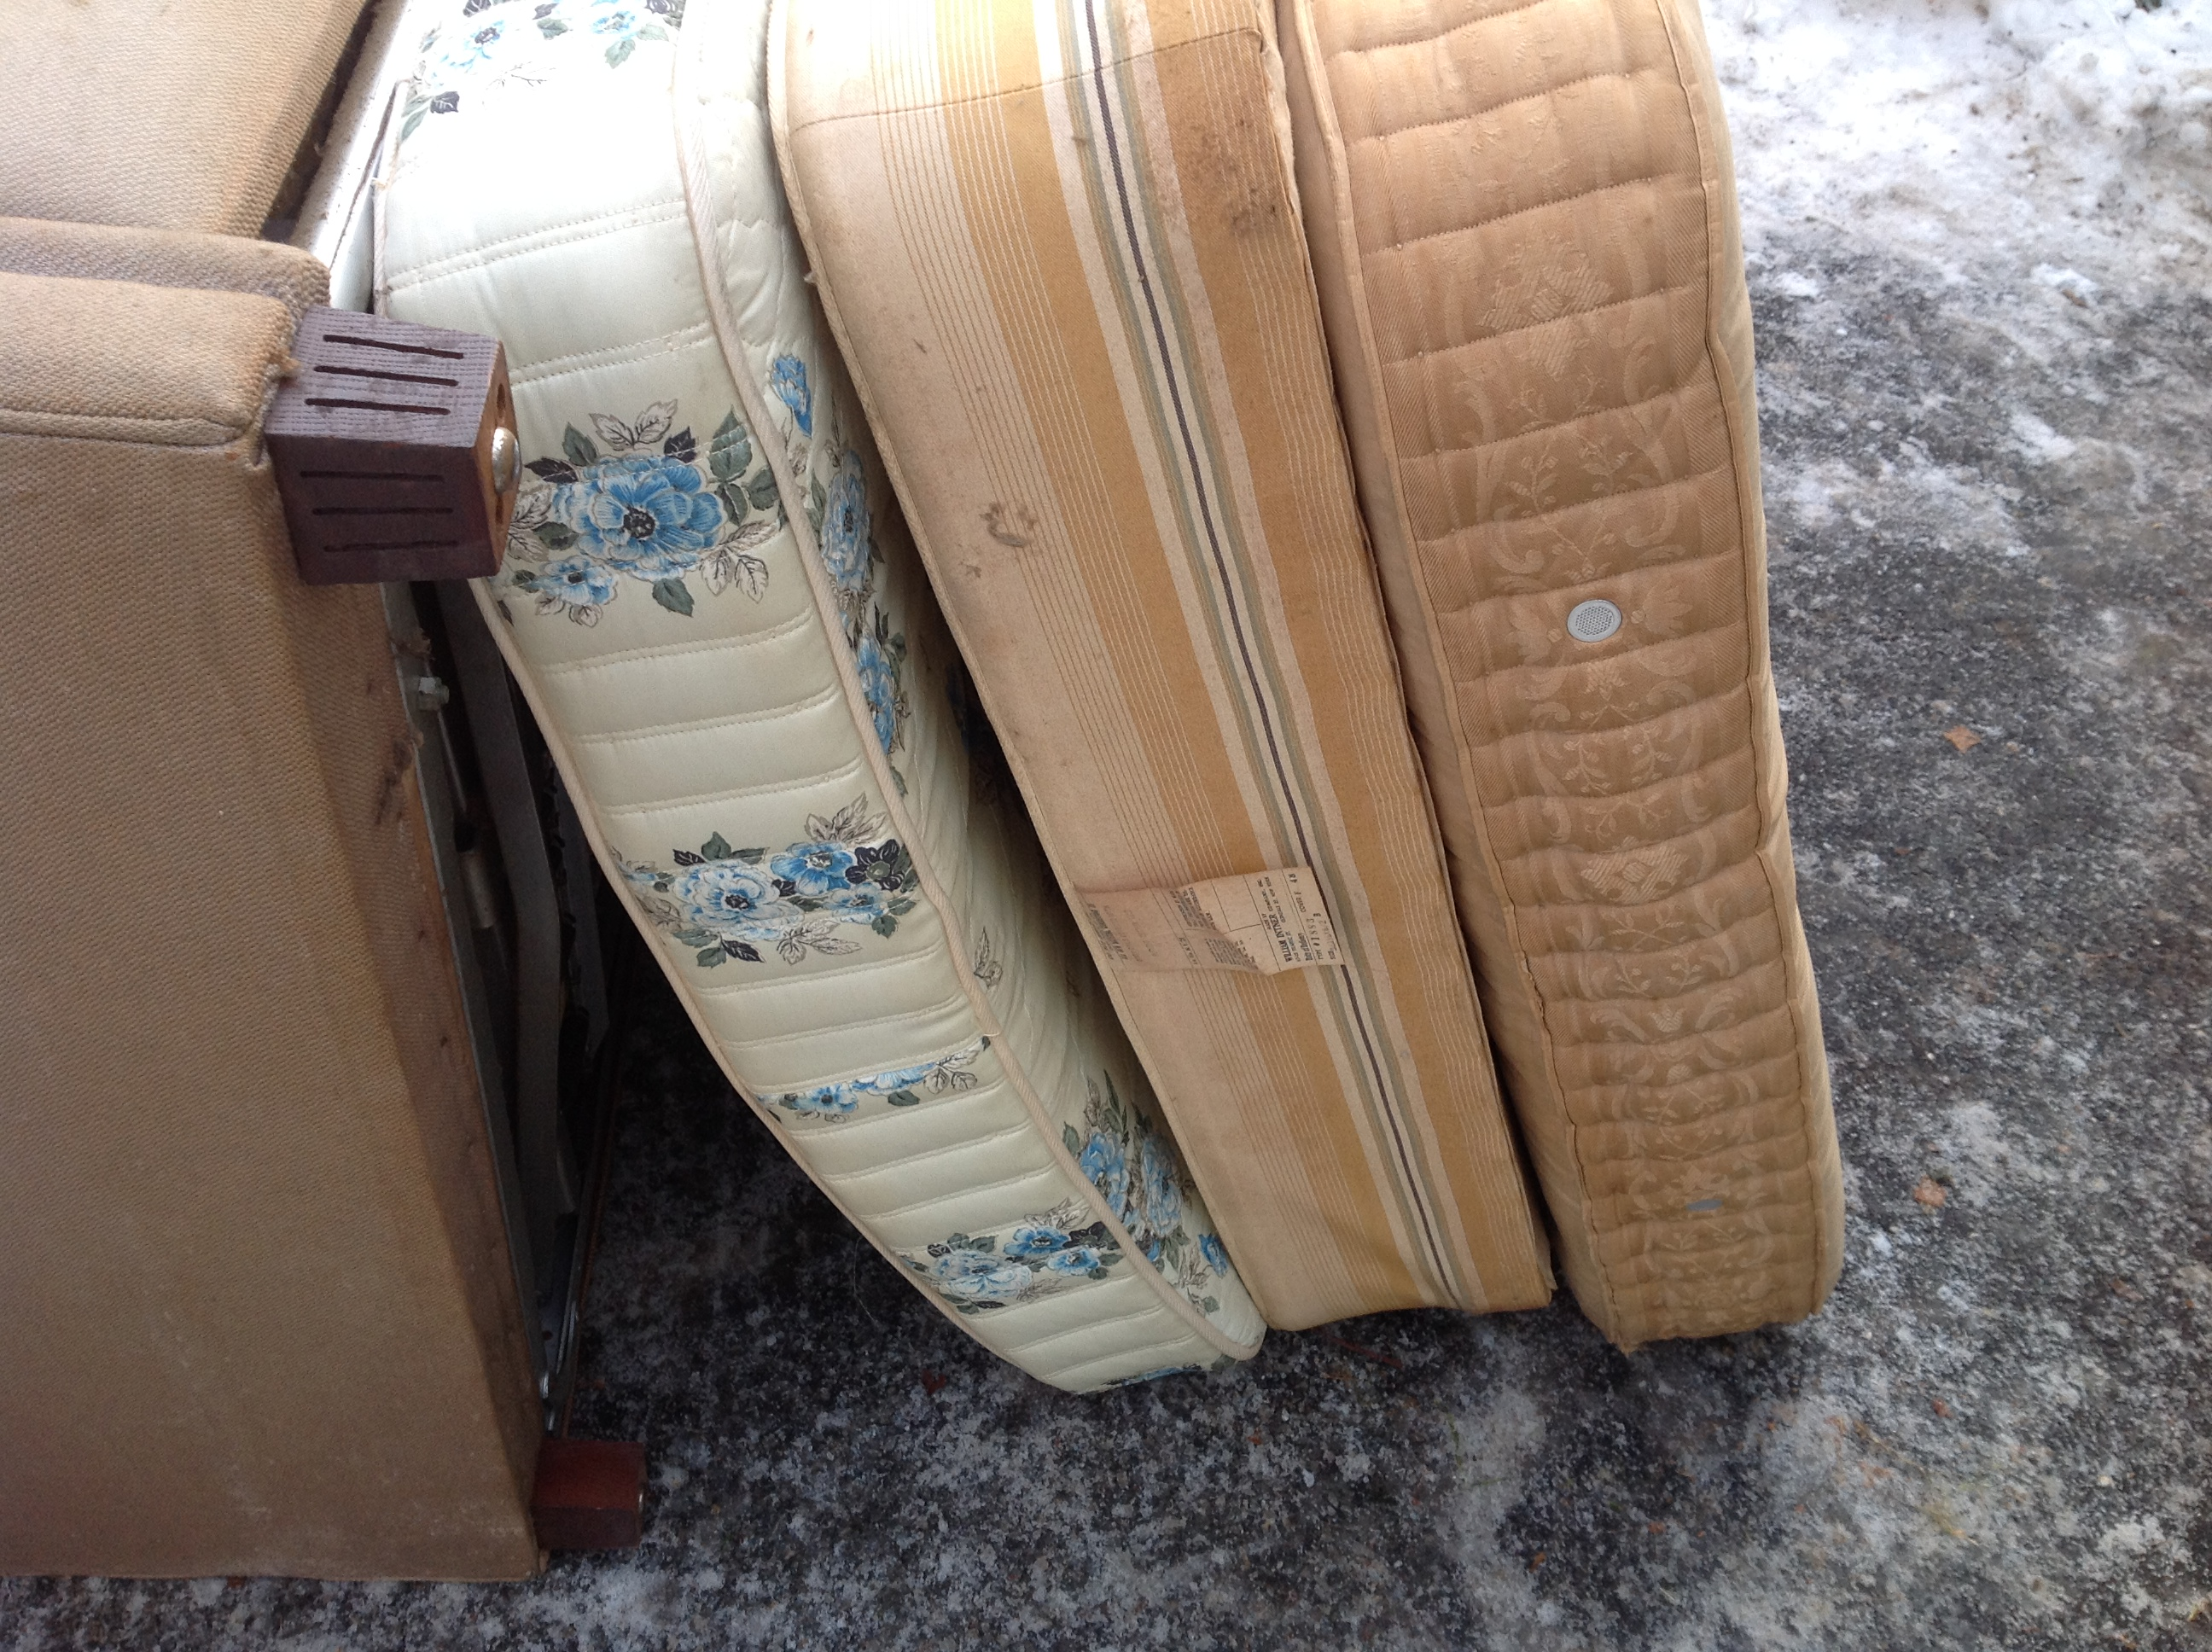 Junk removal job pany finds 50 year old mattress in